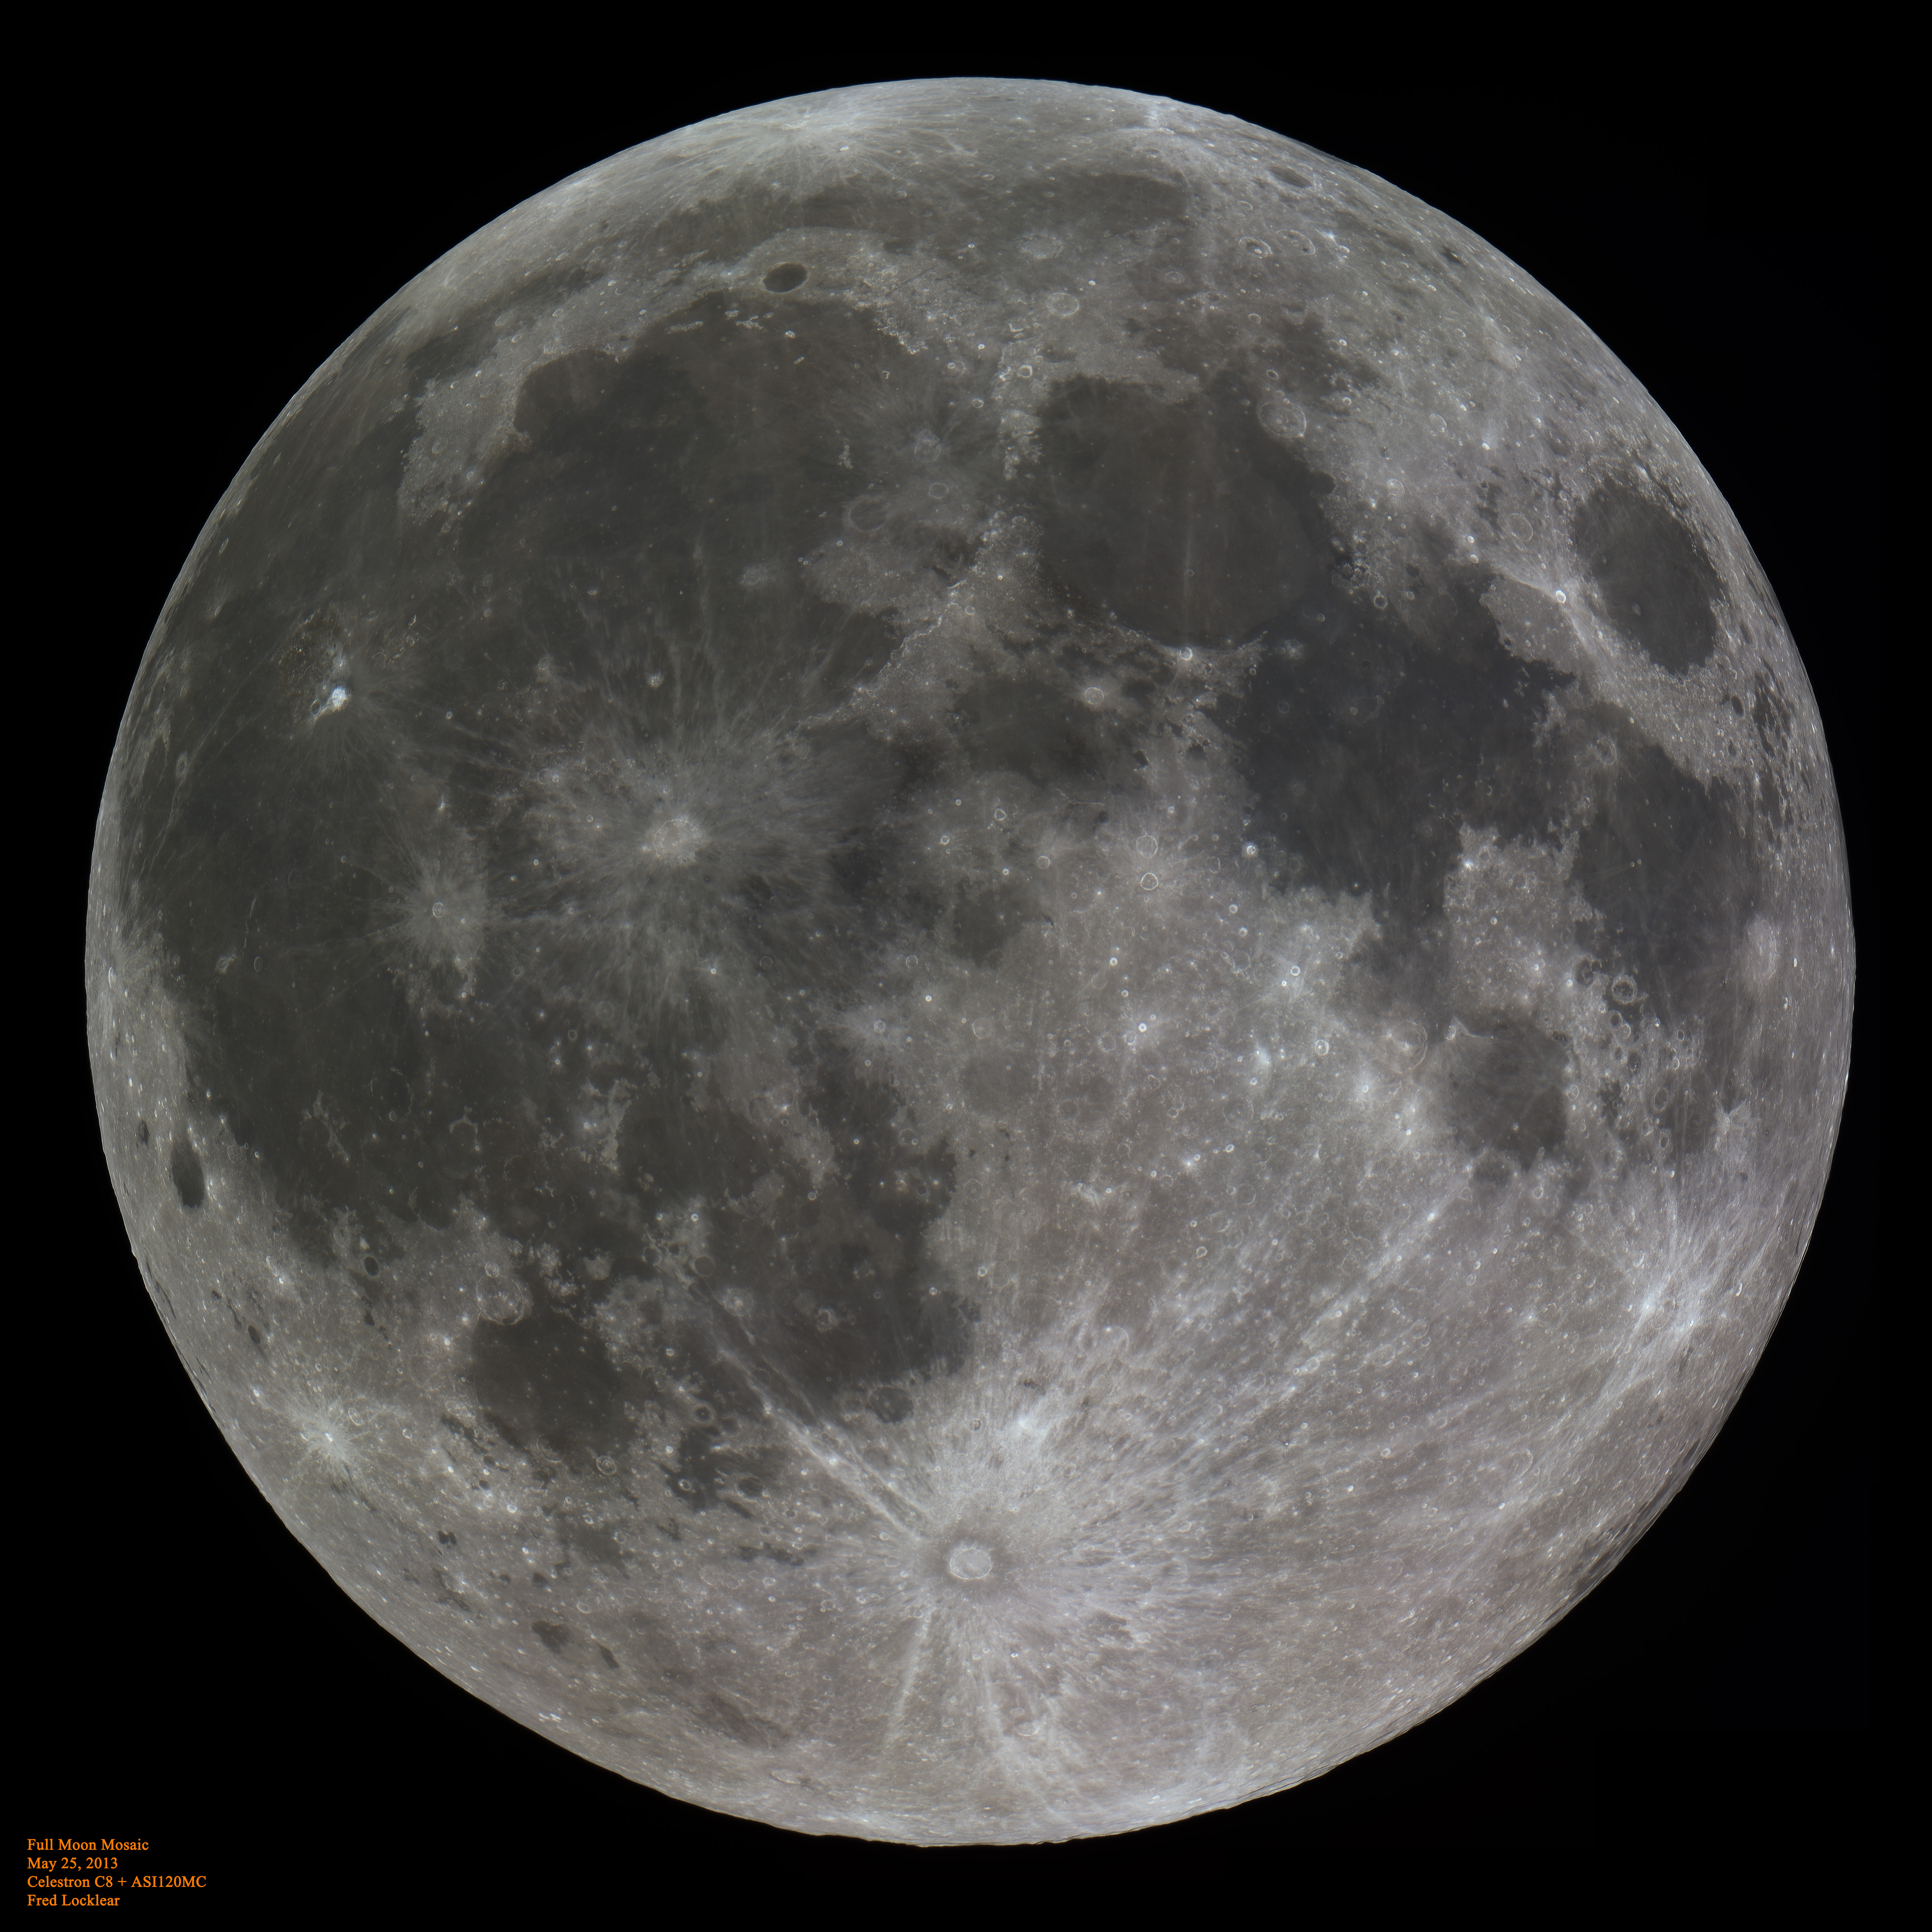 Full Moon: Full Moon: Amazingly Detailed Hi-res Image Of The Moon